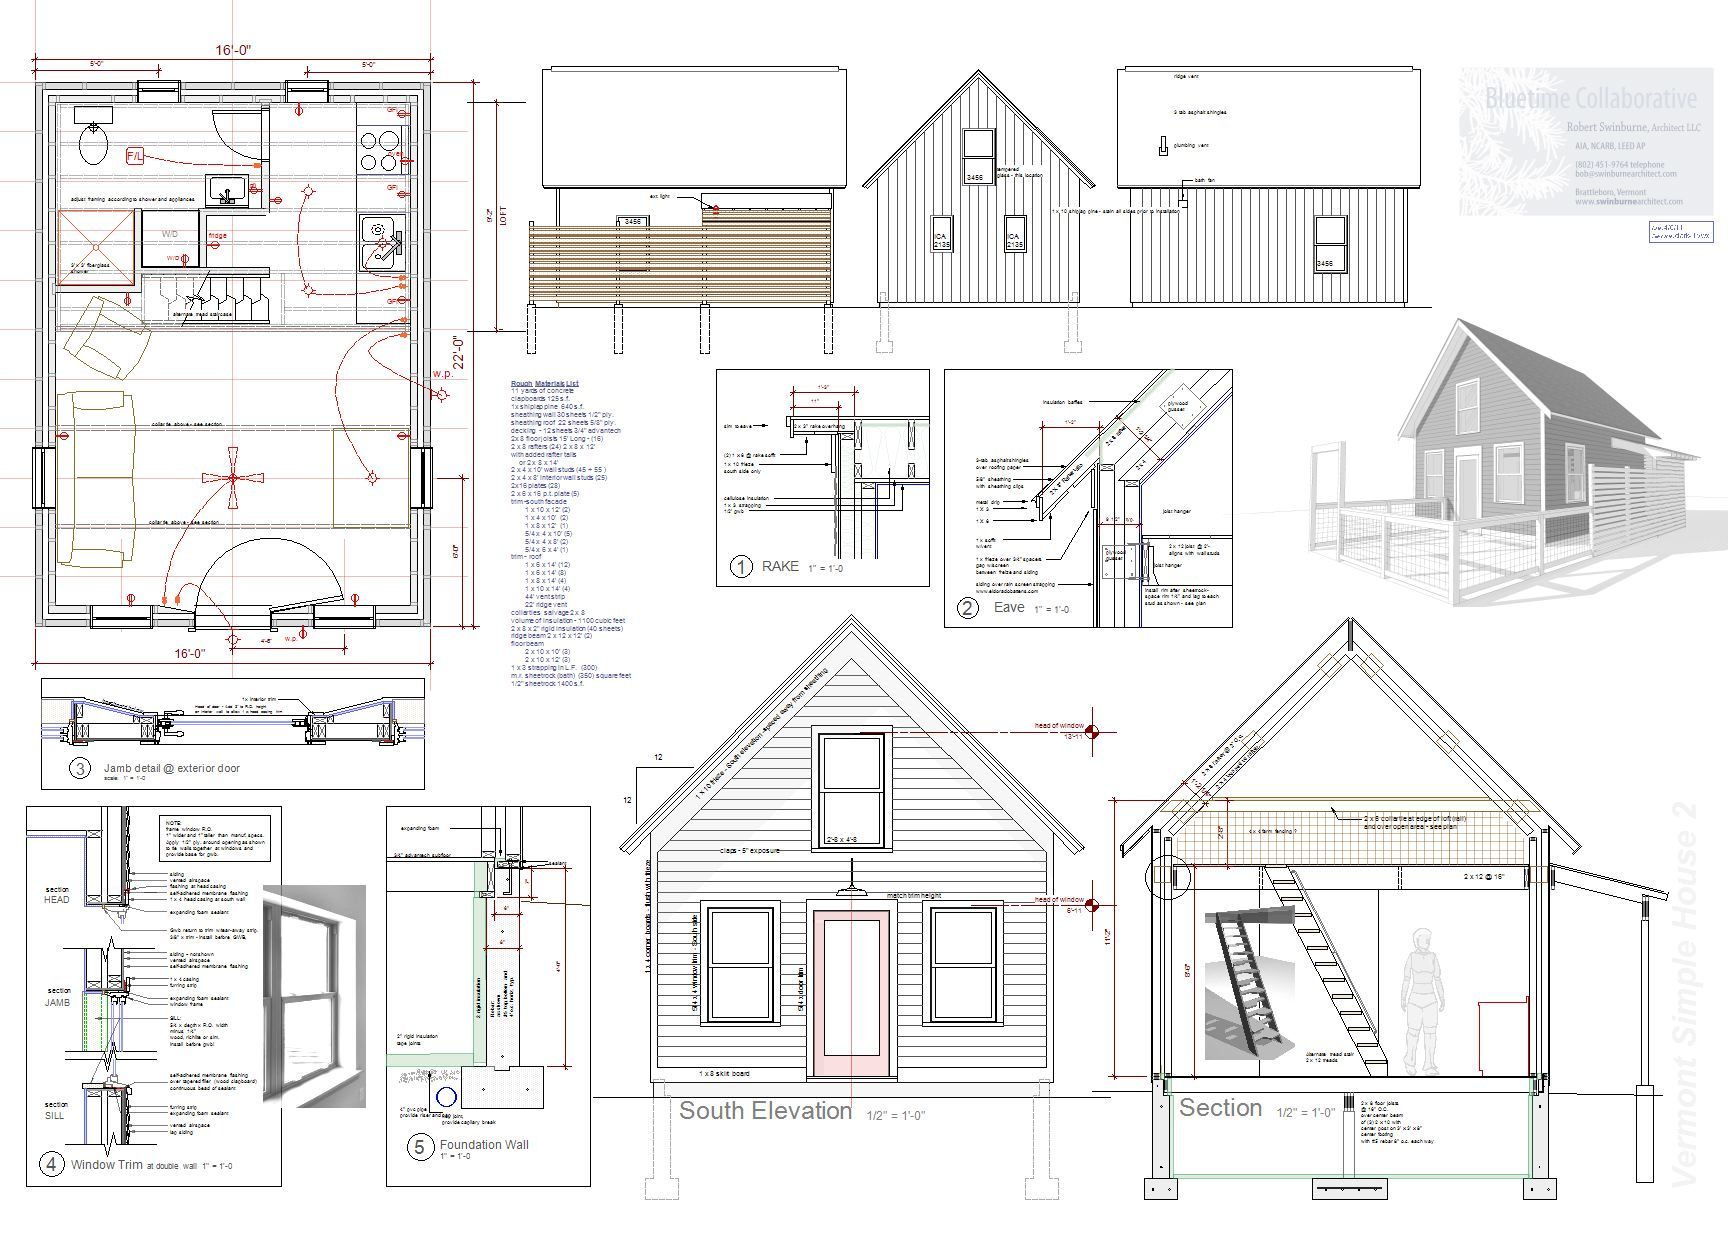 17 Best images about Tiny house Floorplans on Pinterest